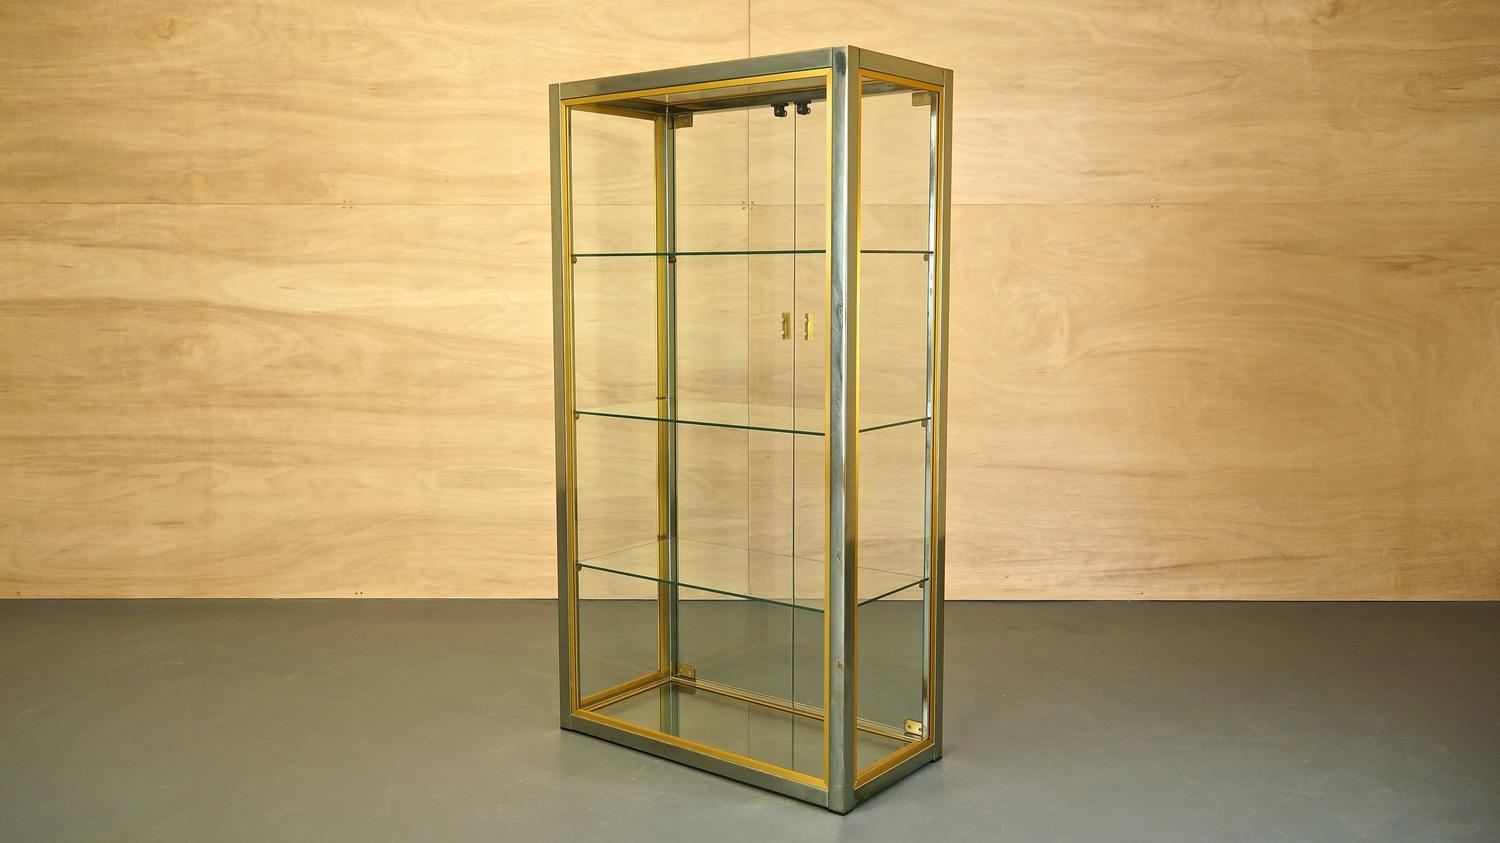 #A78624 Italian Glass/Brass/Chrome Display Cabinet By Renato Zevi  with 1500x843 px of Best Glass Display Cabinets Italian 8431500 image @ avoidforclosure.info